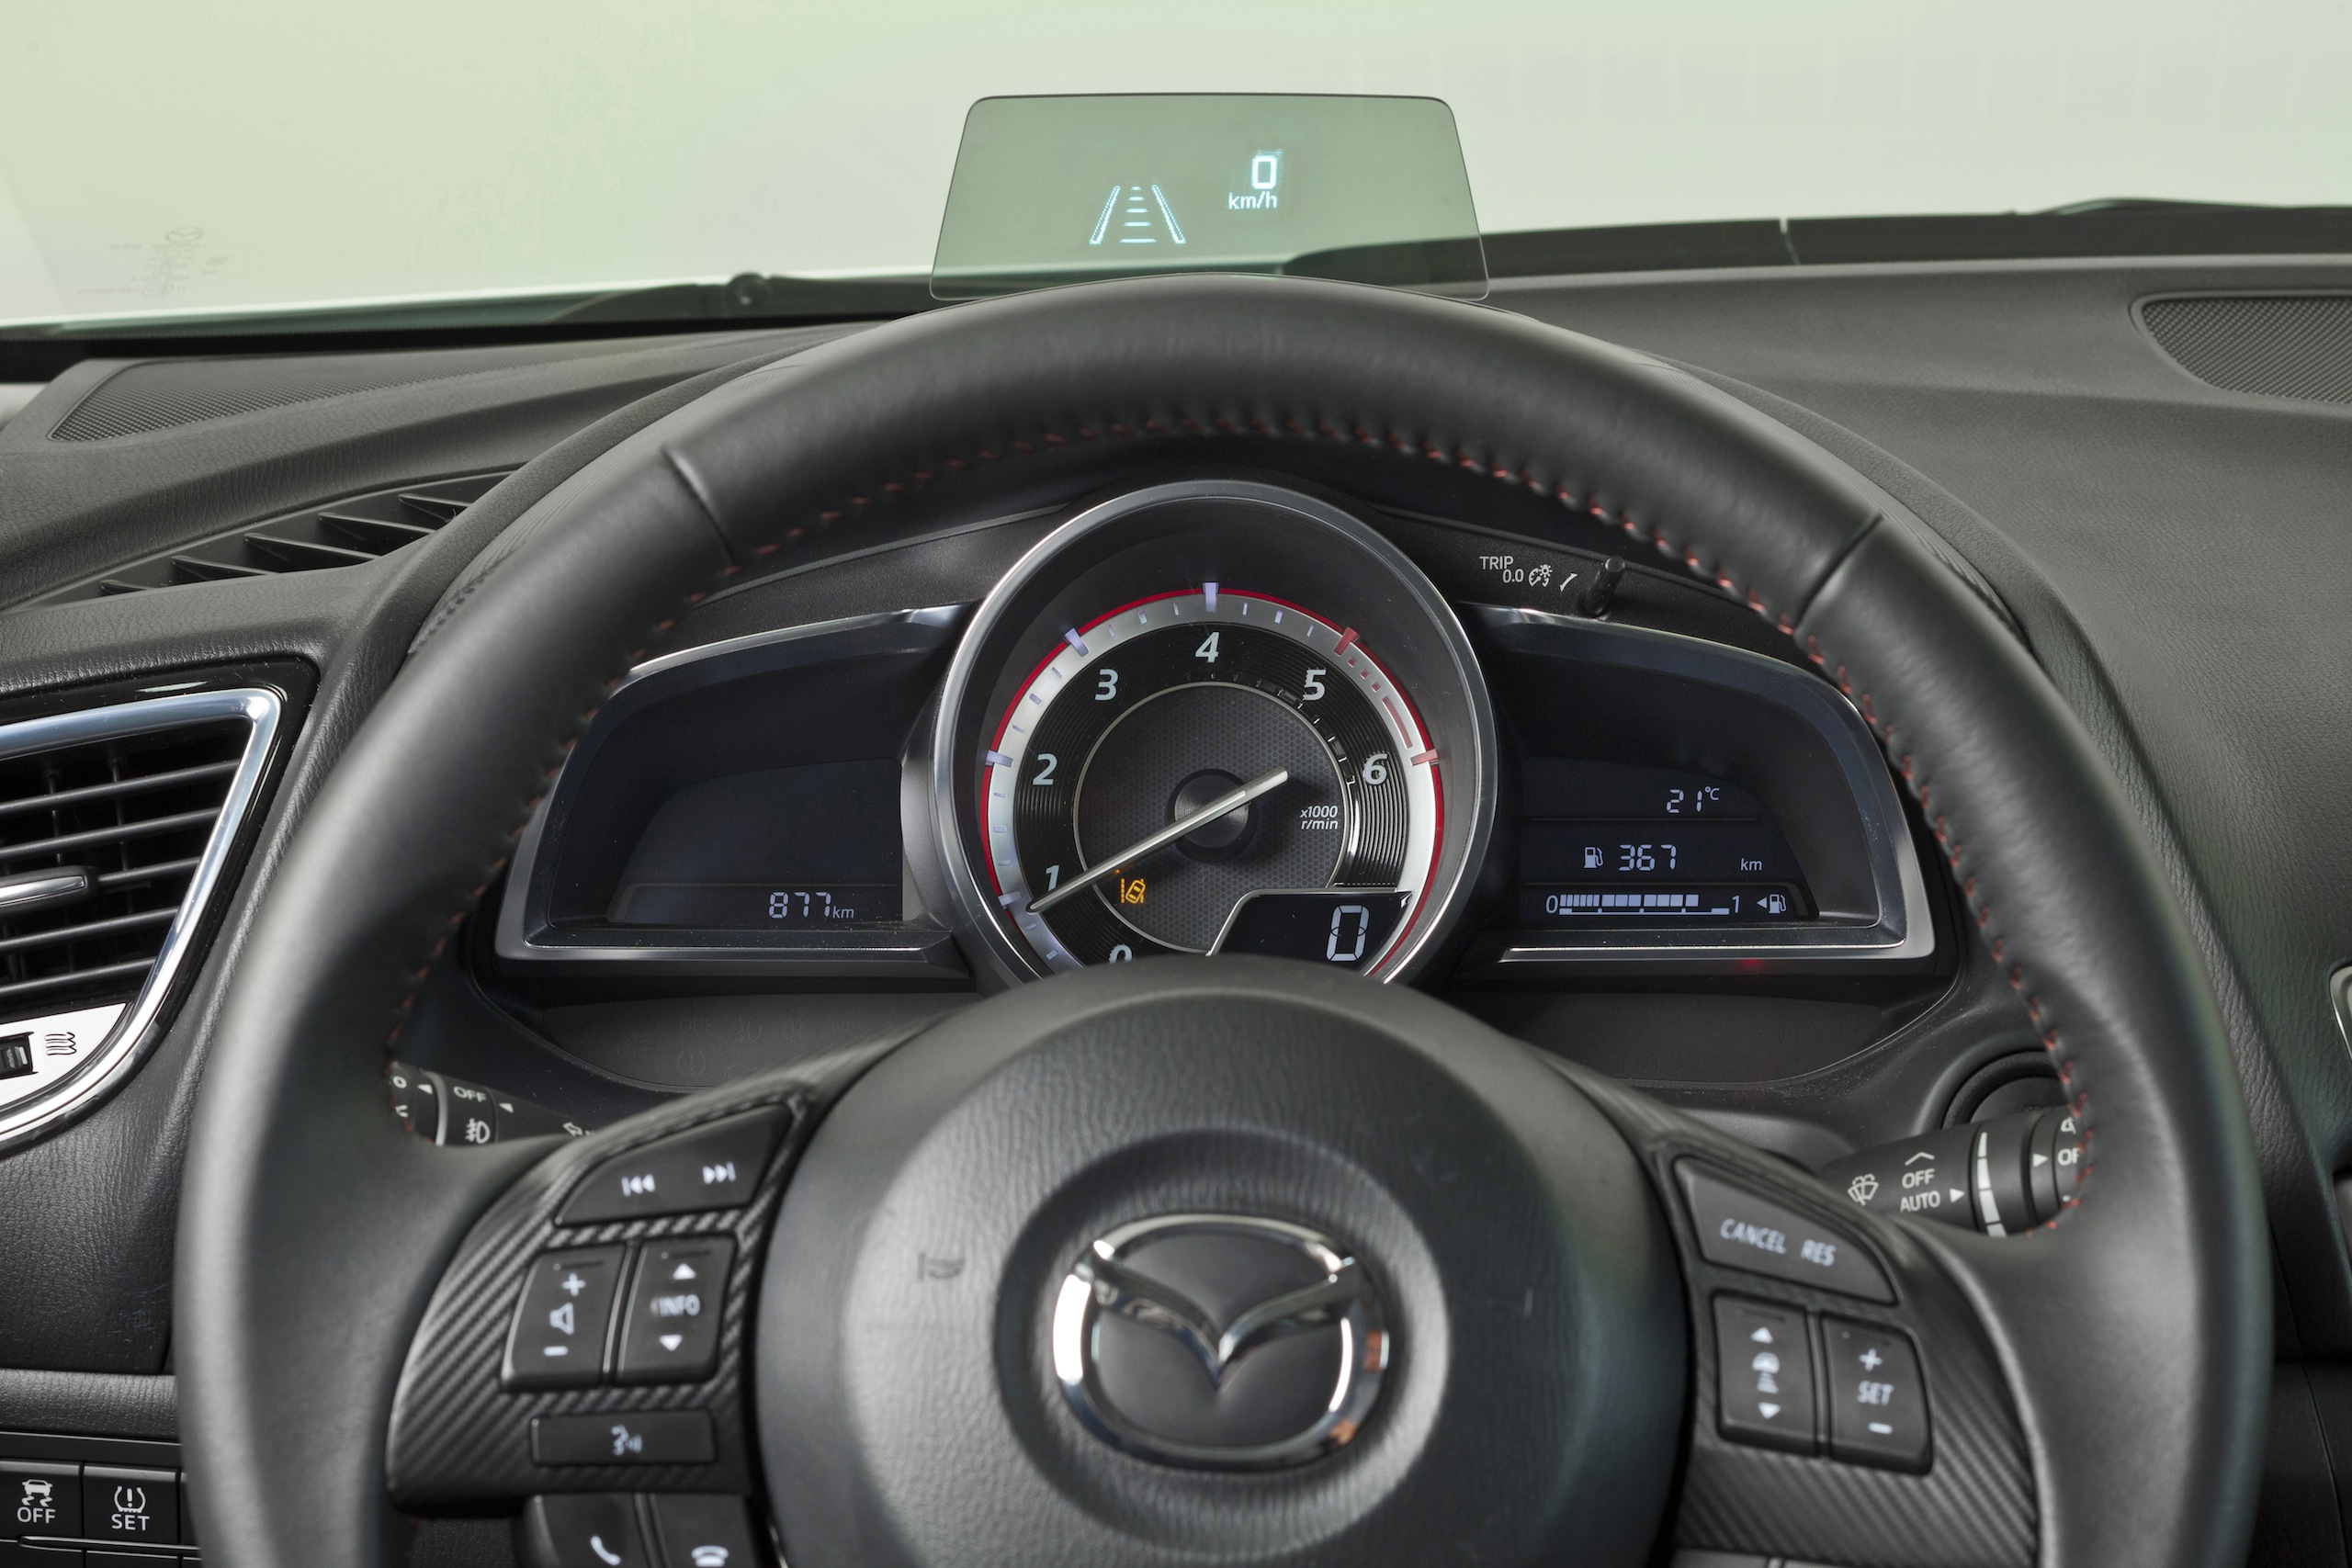 2014 Mazda3 arrives in Europe with MZD Connect HMI Paul ...